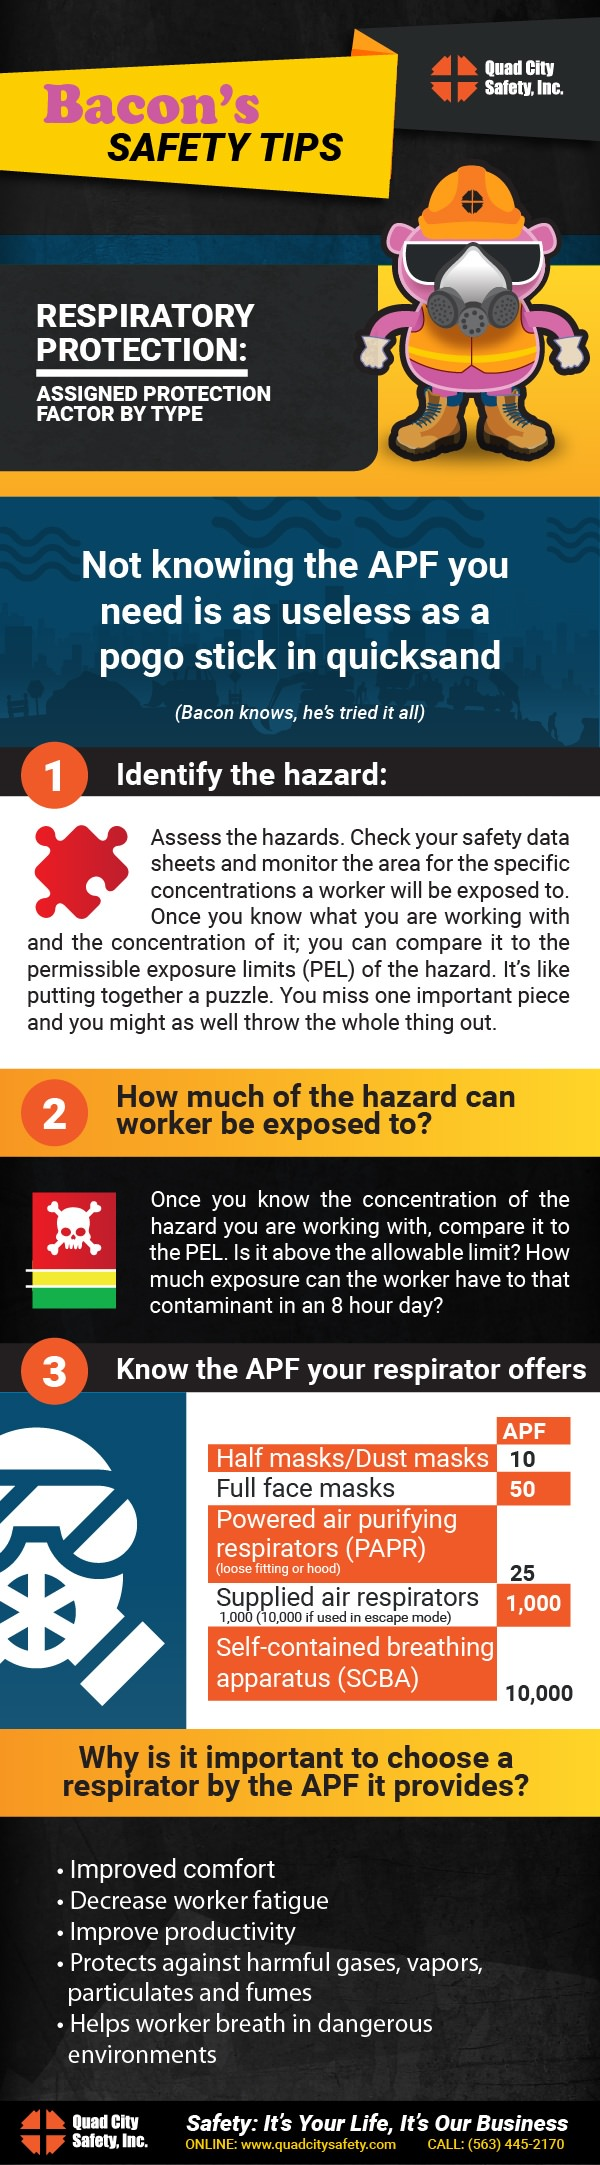 Bacon's Safety Tips Respiratory Protection: Assigned Protection Factor by Type.